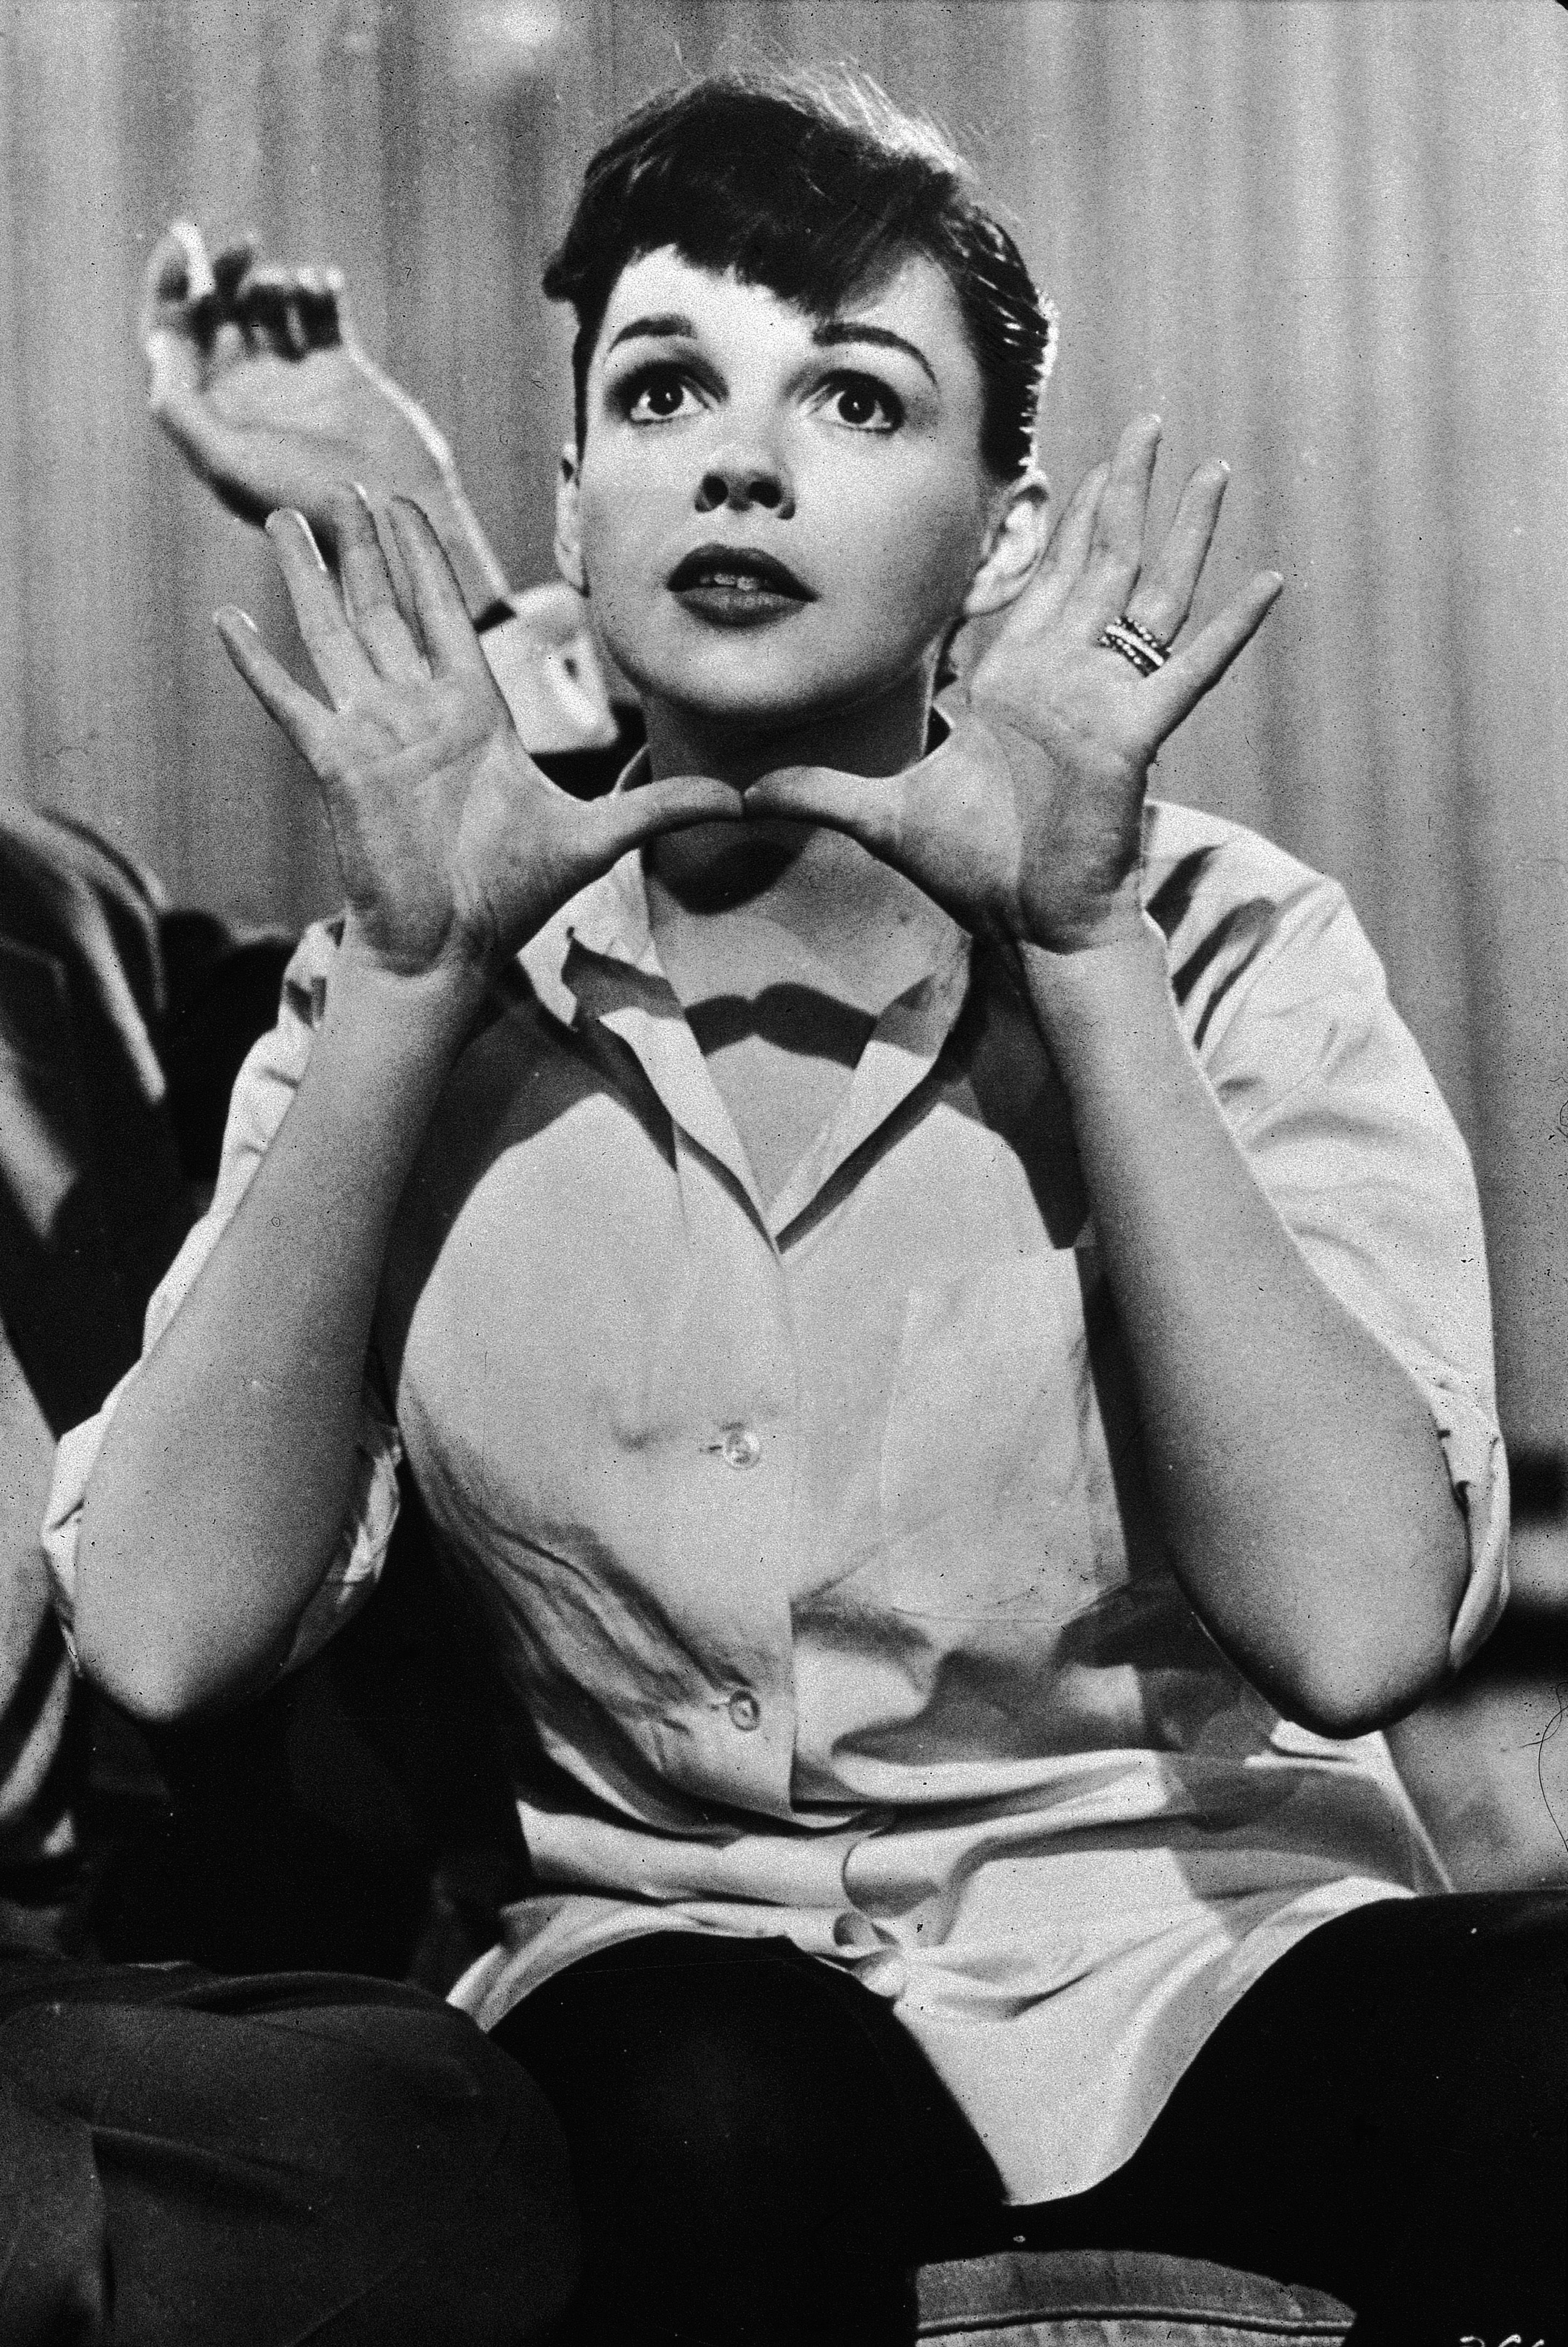 Judy Garland holds her hands up near her face, circa 1950s | Photo: Getty Images